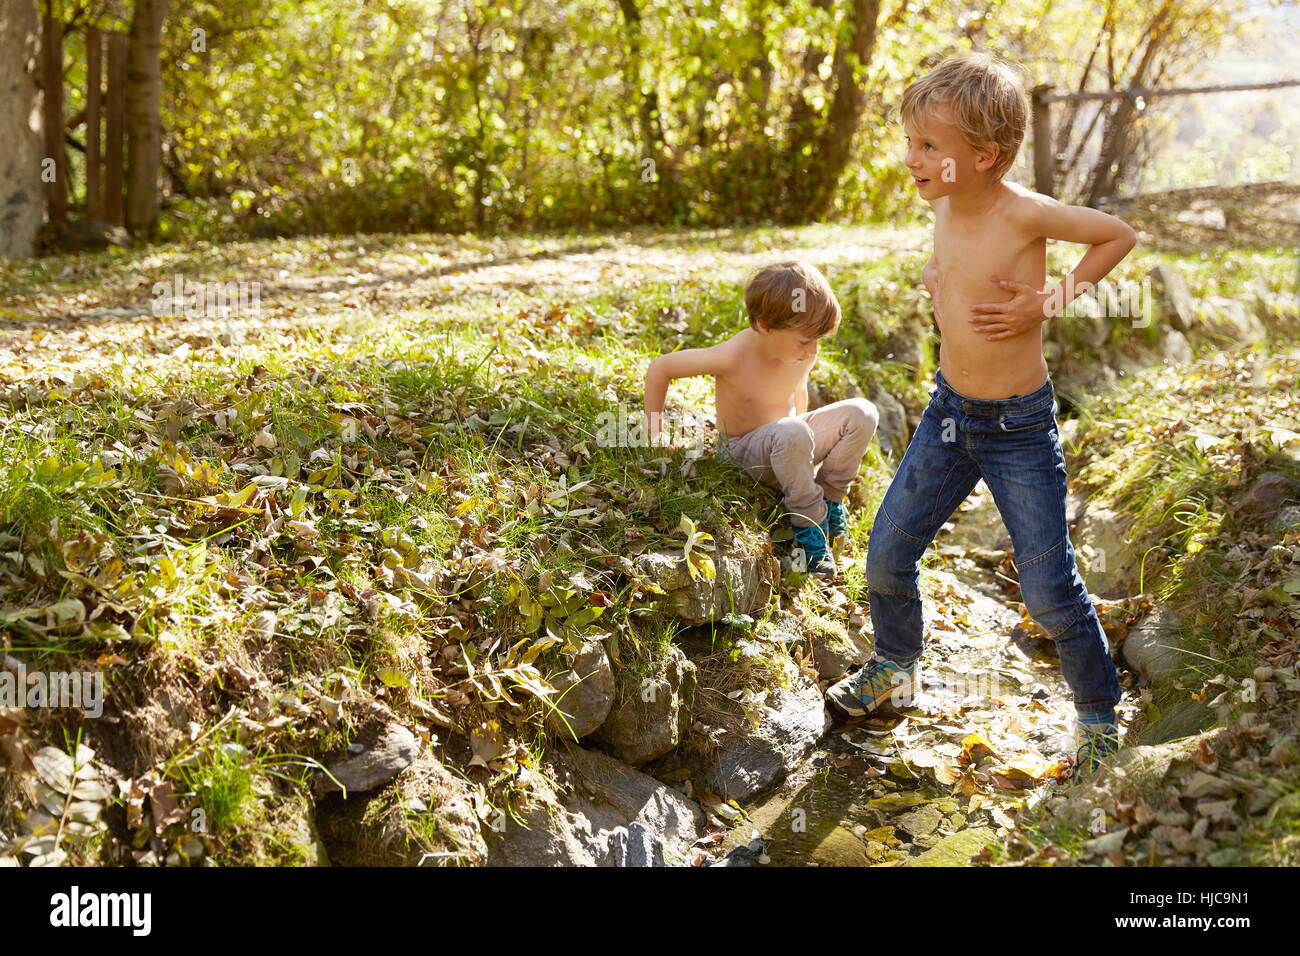 Two boys exploring outdoors, Schluderns, South Tyrol, Italy - Stock Image